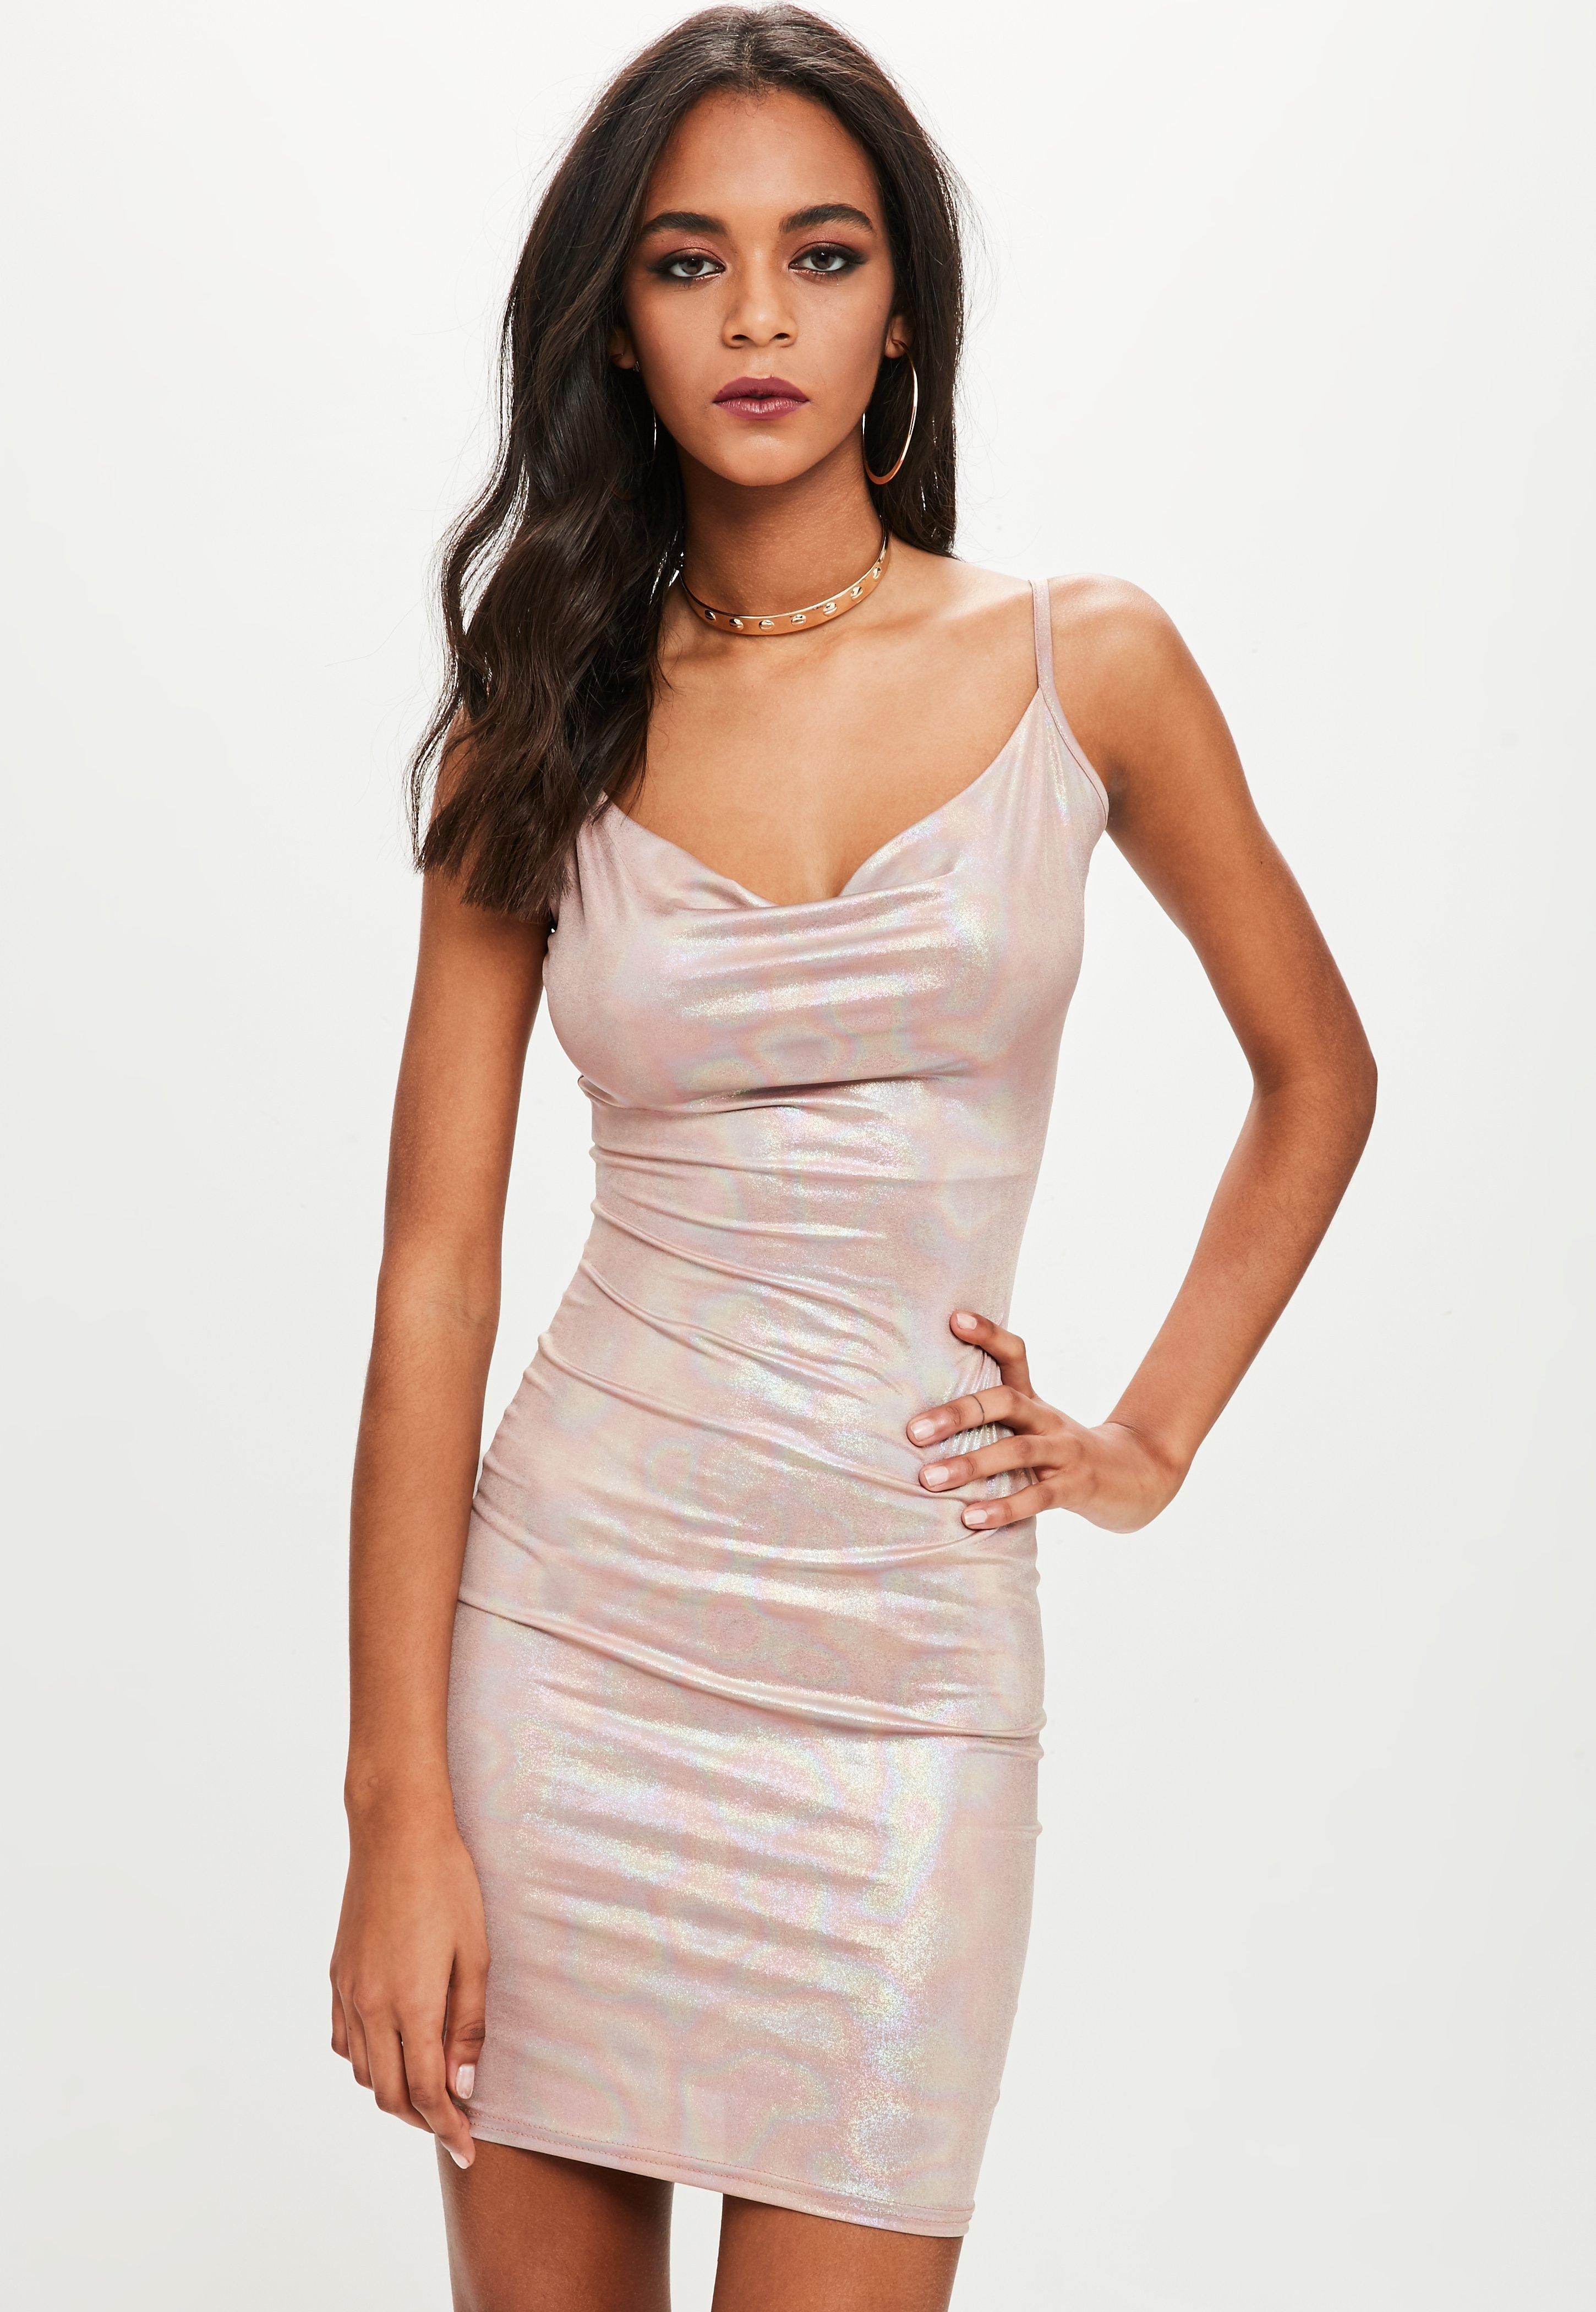 032b11abccbe6 Lyst - Missguided Petite Pink Slinky Cowl Neck Metallic Dress in Pink